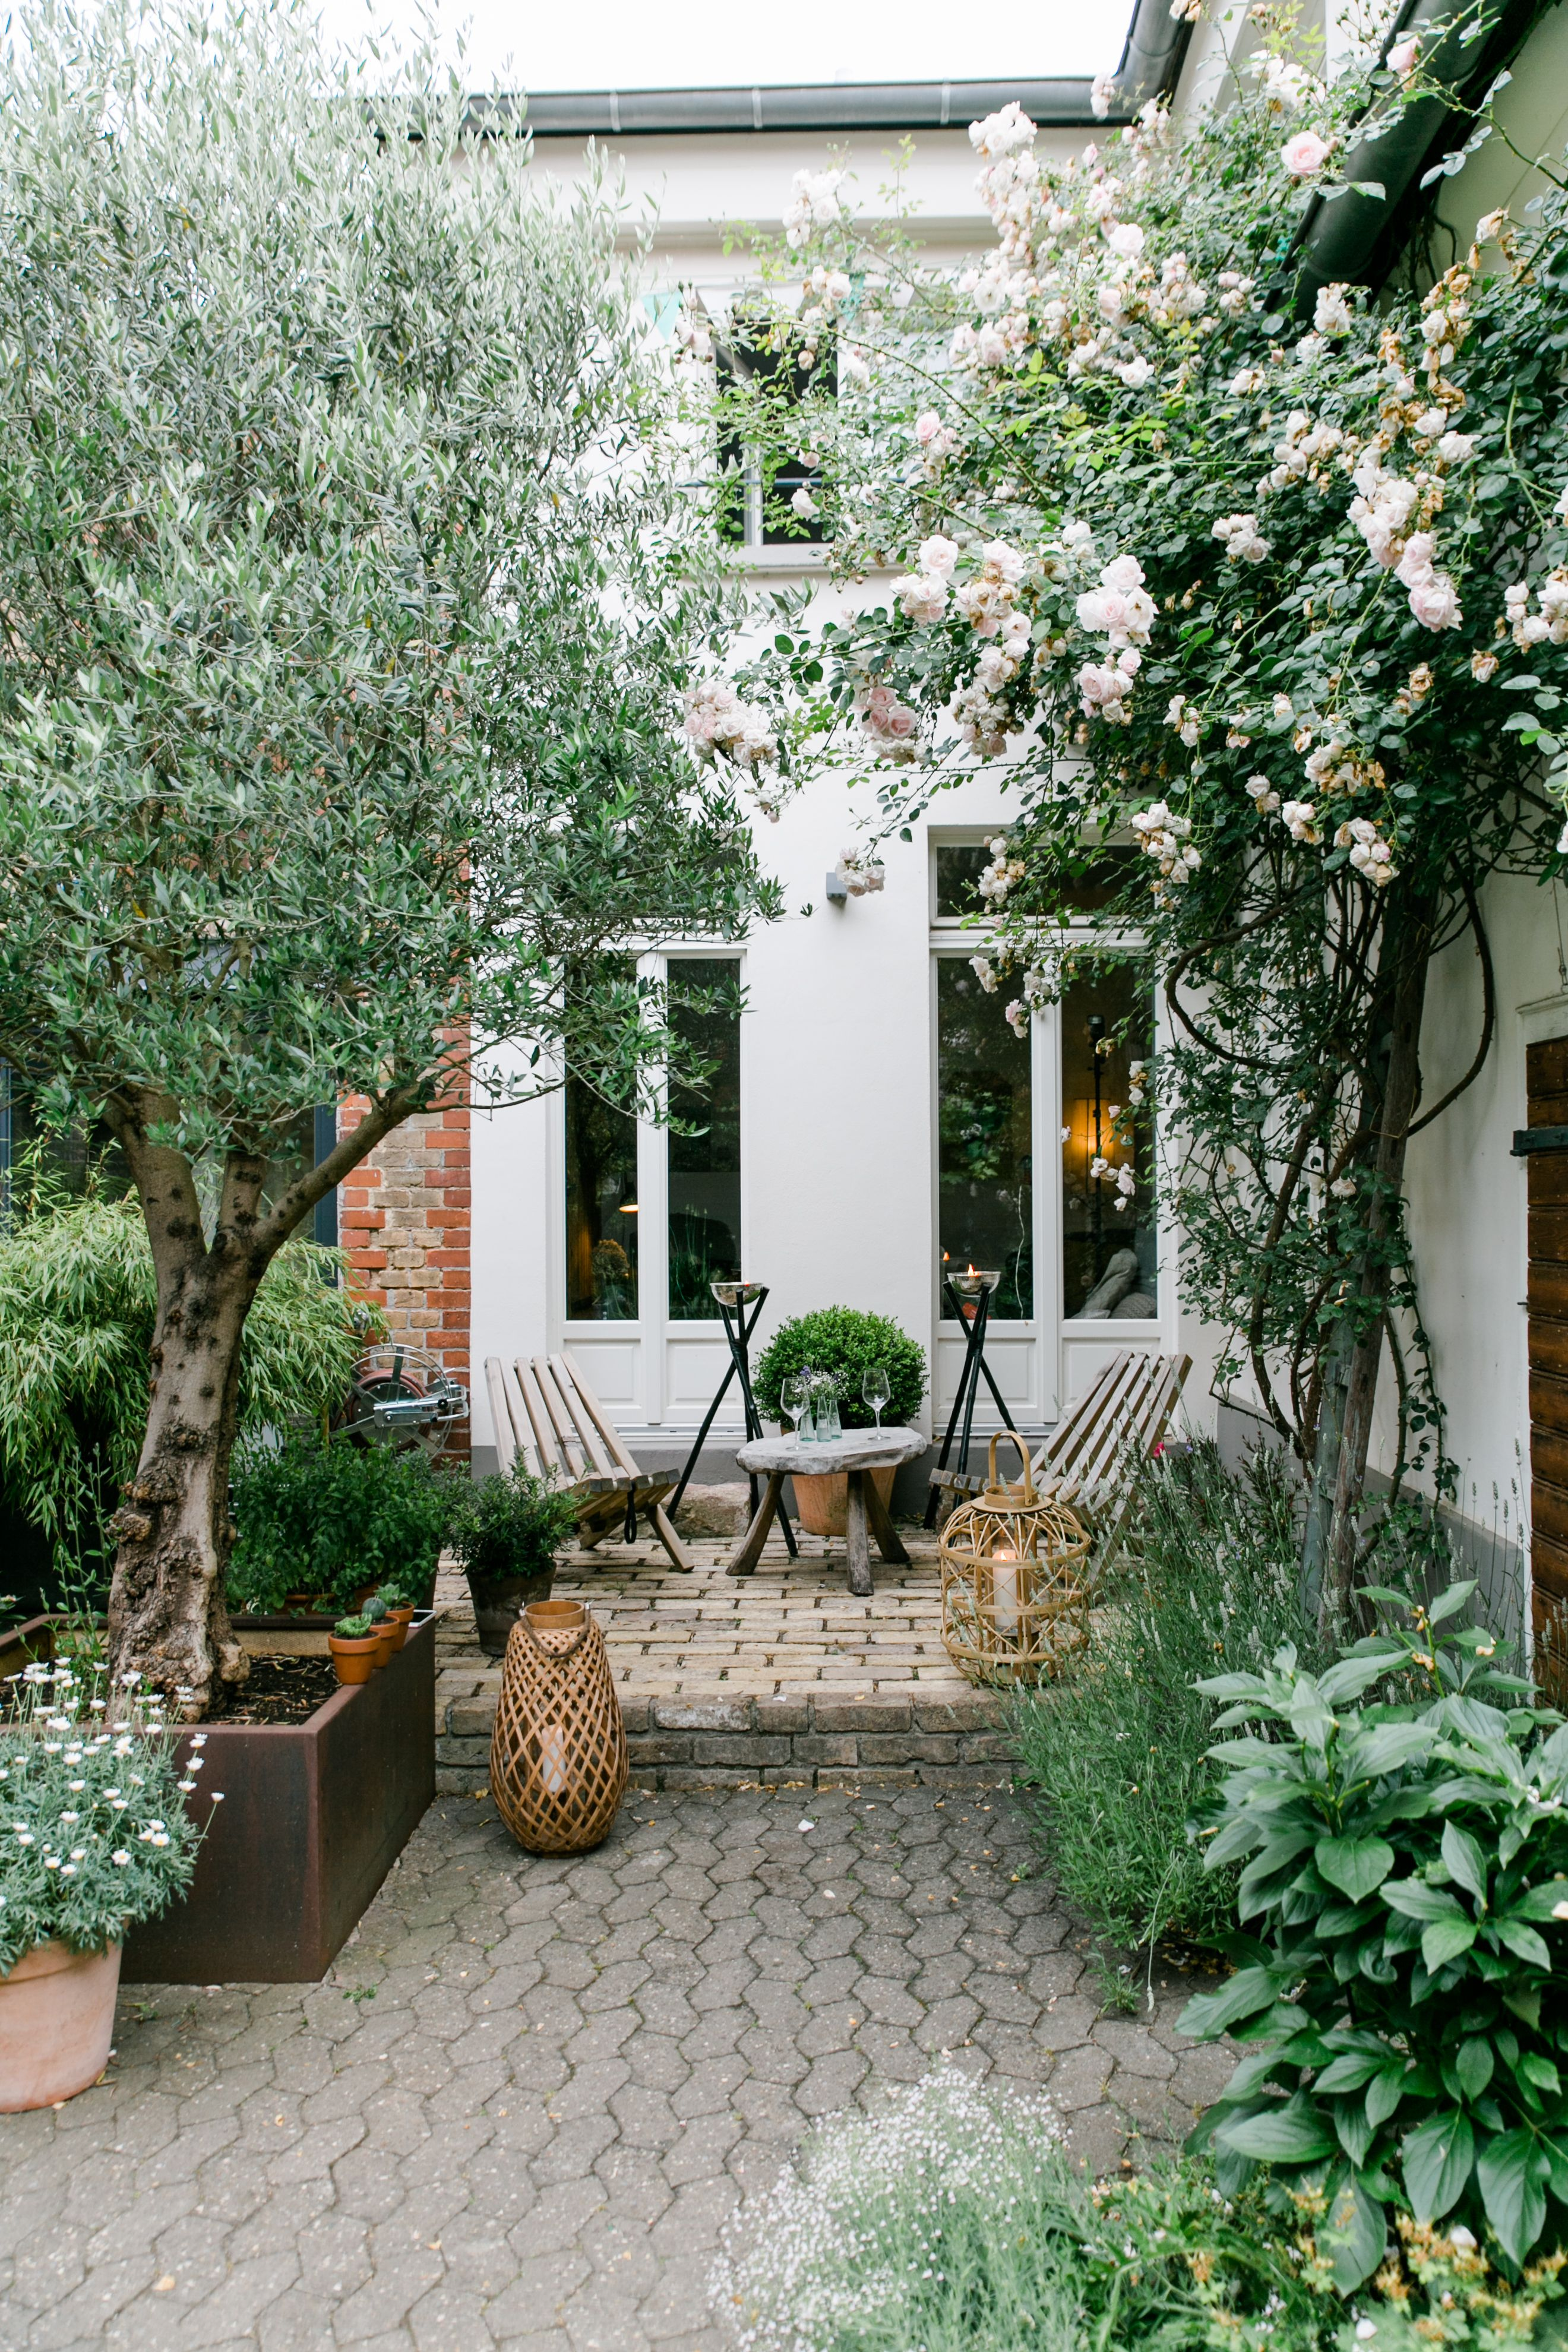 backyard patio inspiration | backyard landscaping inspiration | patio furniture inspiration | small backyard design inspiration